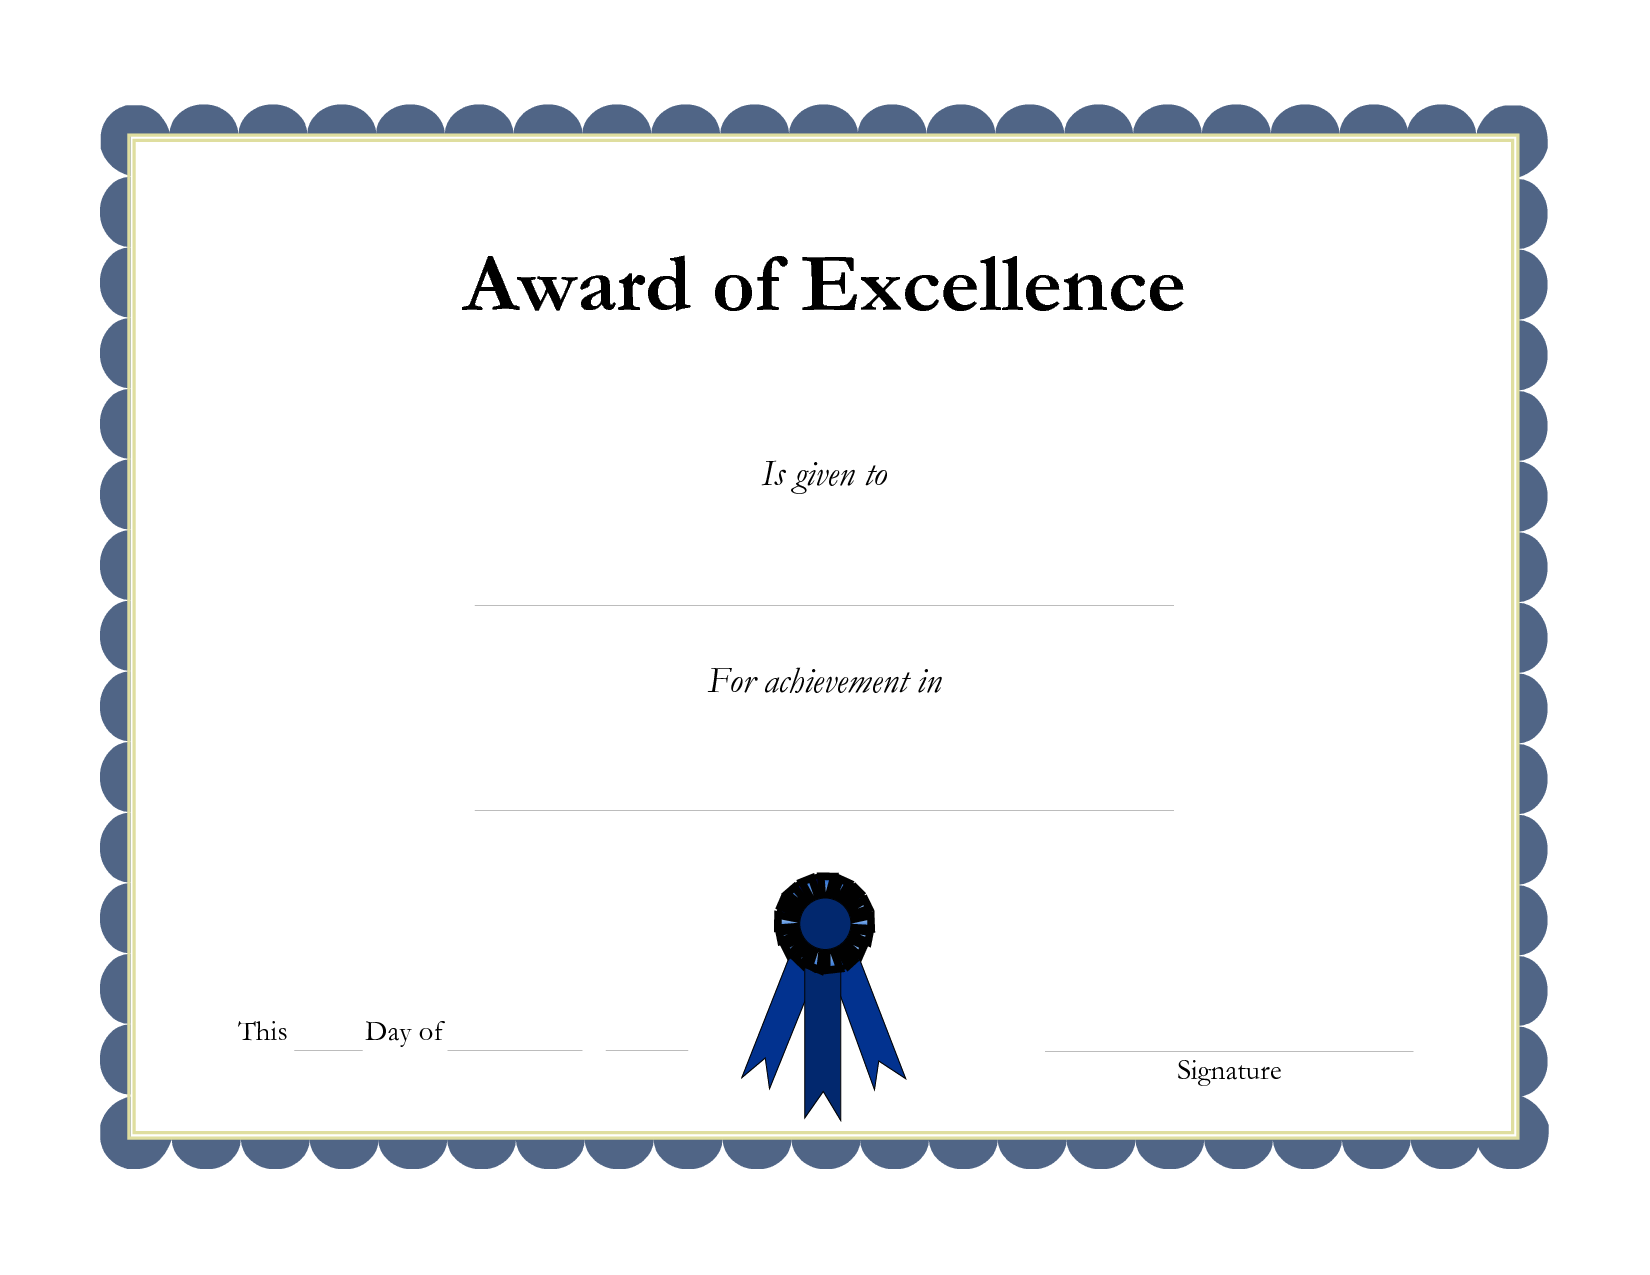 Award template certificate borders award of excellenceis given award template certificate borders award of excellenceis given tofor achievement inthisday of signature alramifo Gallery